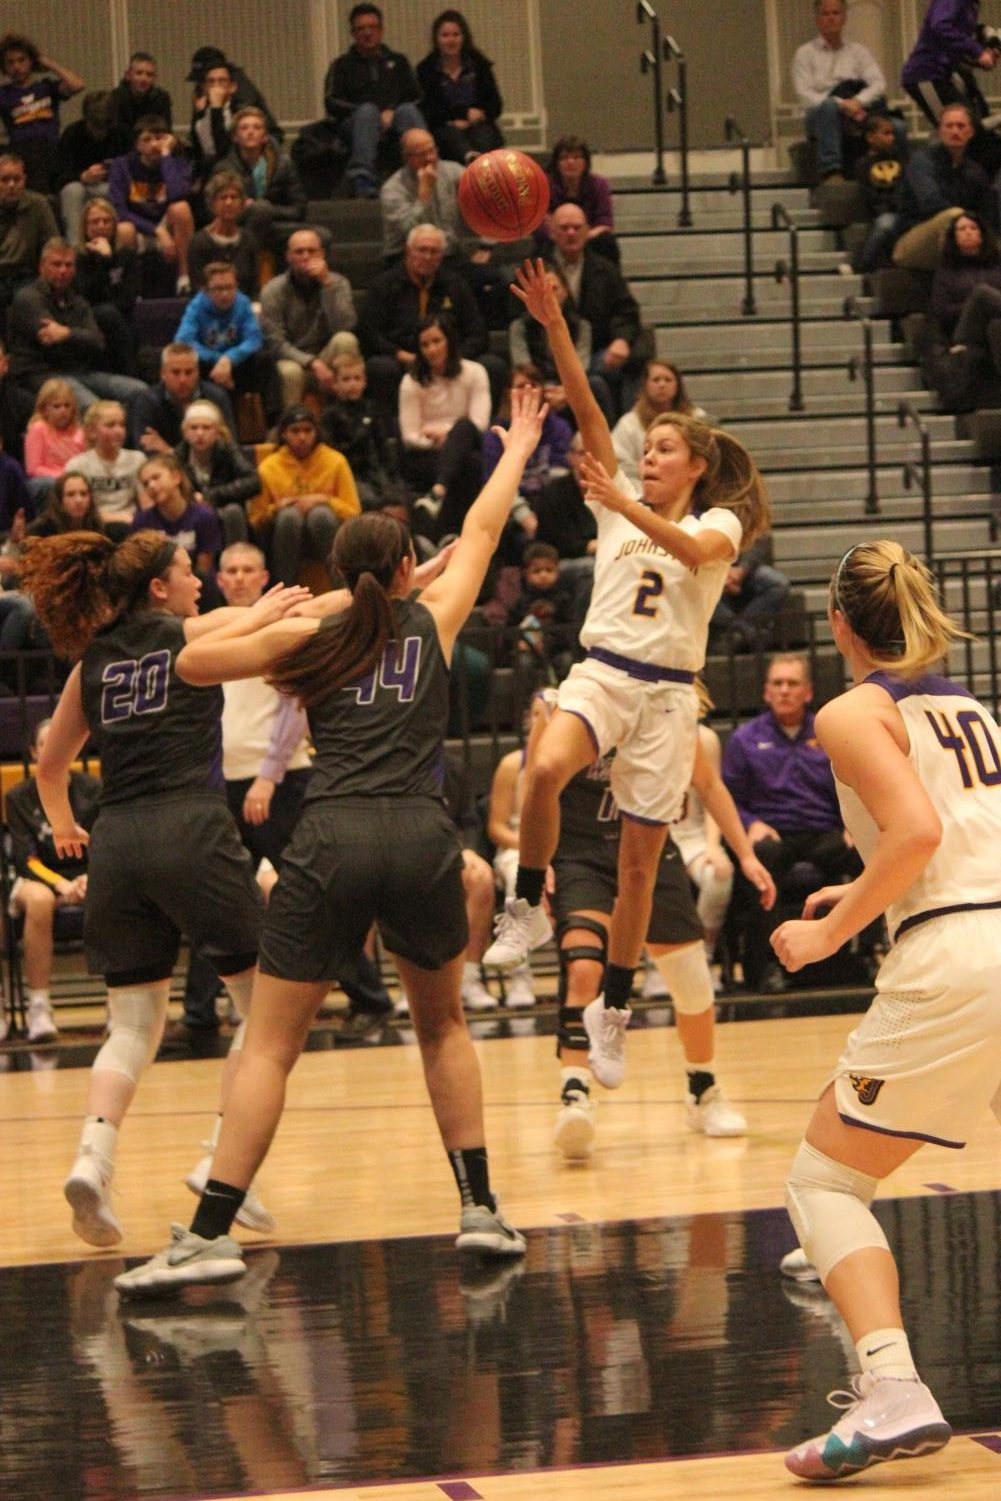 Maya McDermott '20 makes a jump shot for 2 points. McDermott scored 18 points against Waukee